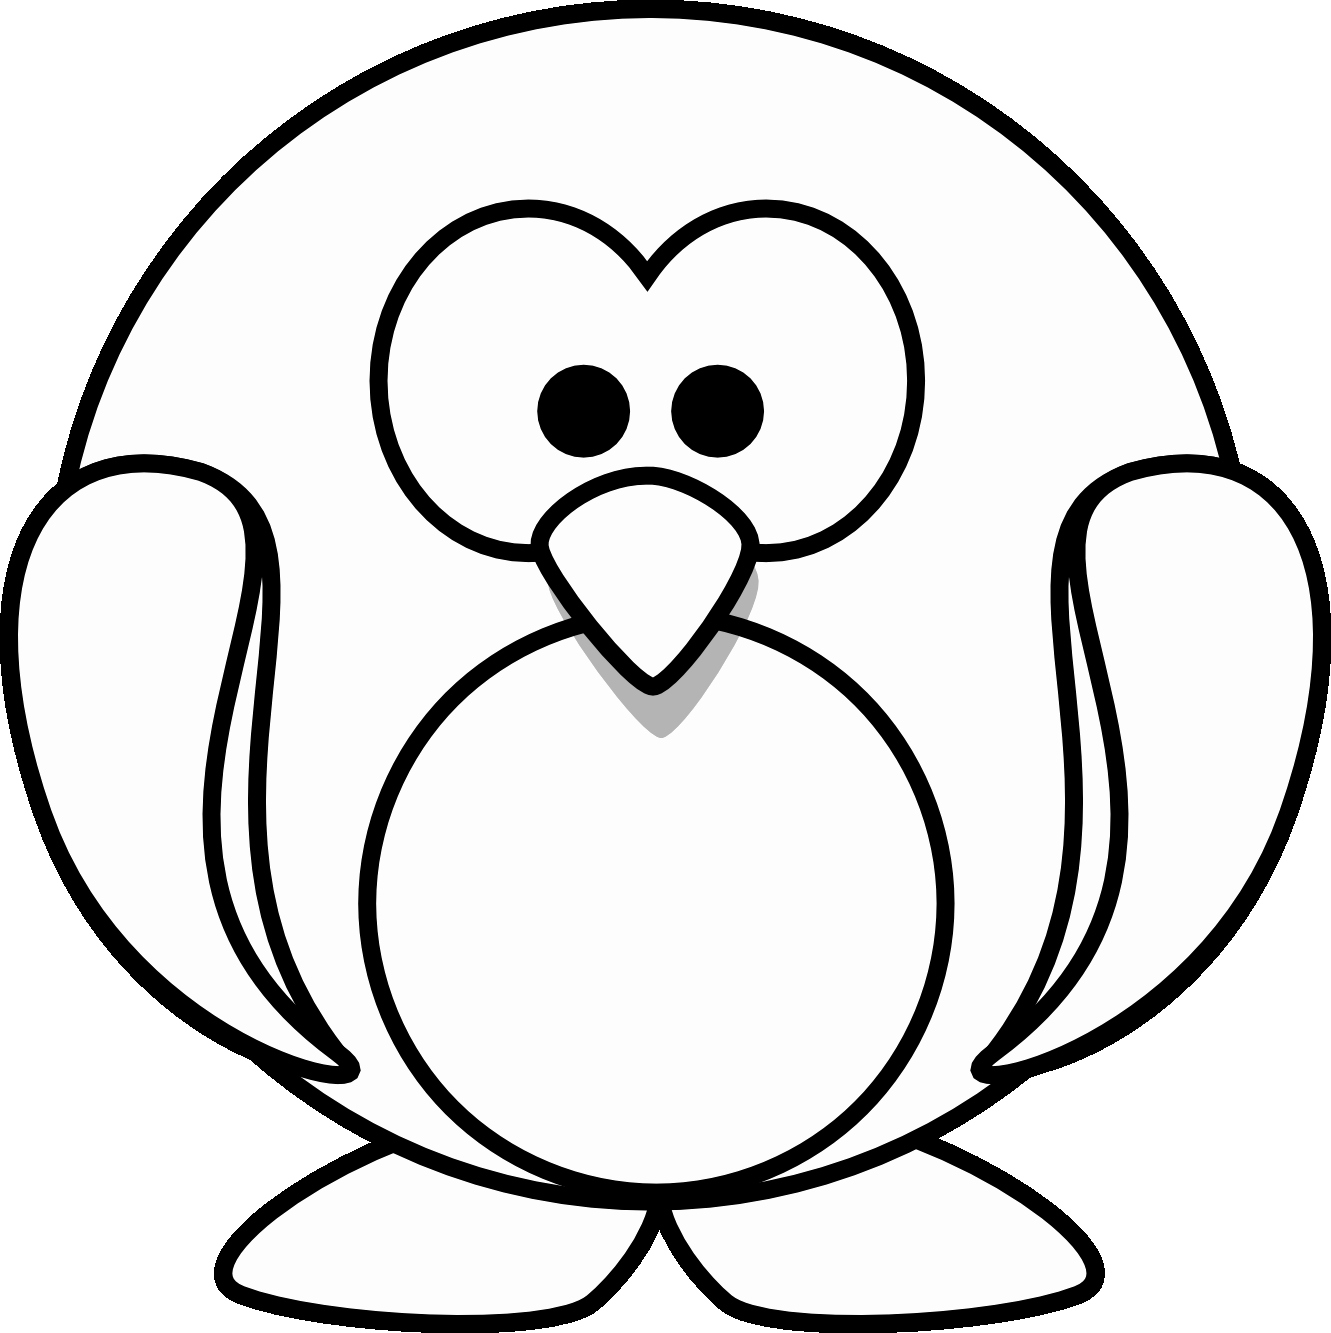 penguin picture to color free penguin coloring pages for adults printable to color to penguin picture